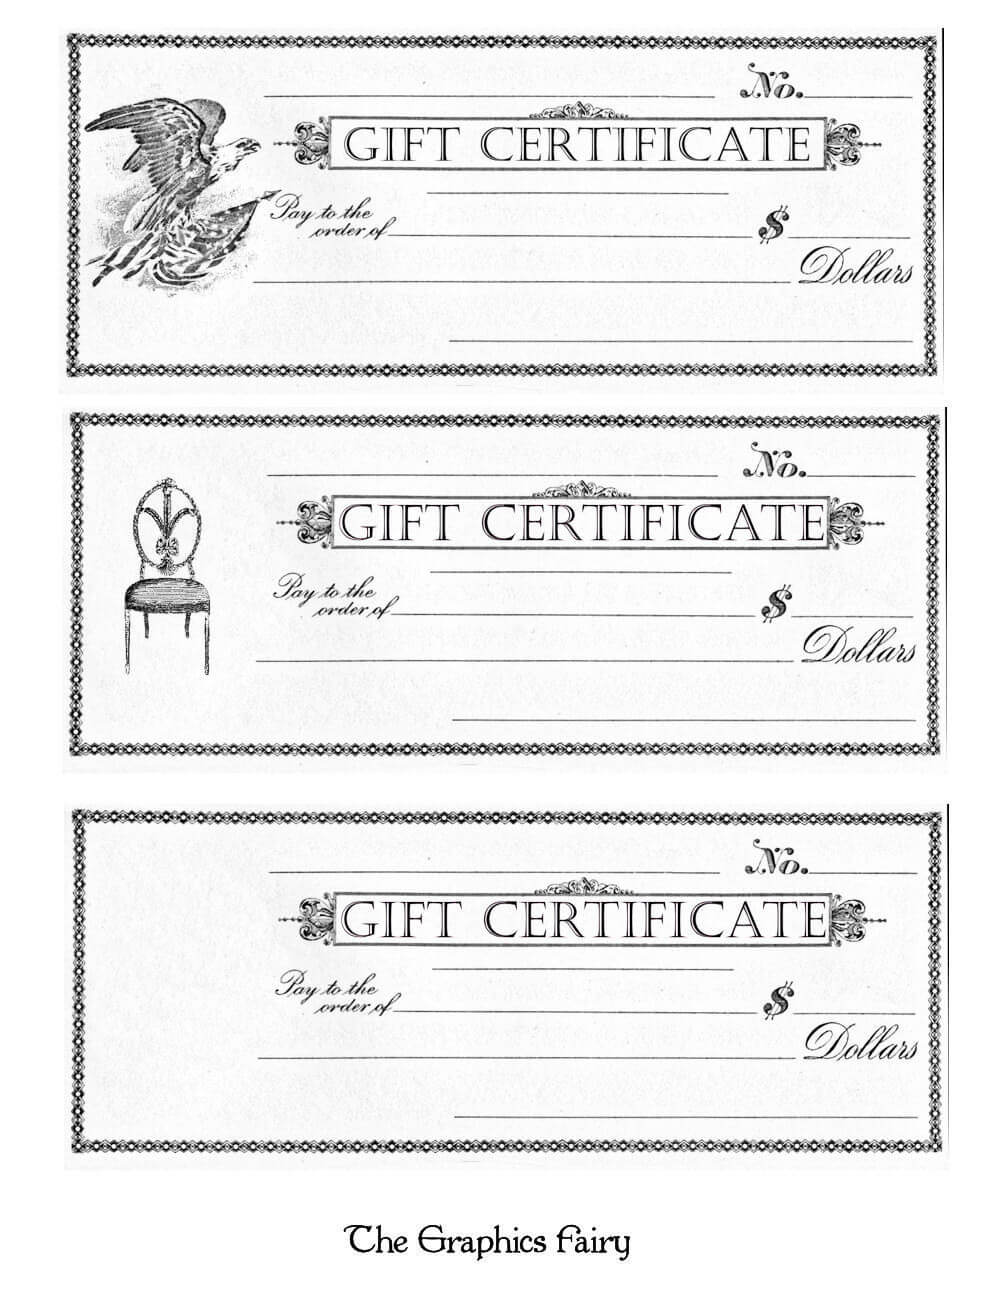 Online Gift Certificate Maker Elegant Free Printable Gift With Black And White Gift Certificate Template Free